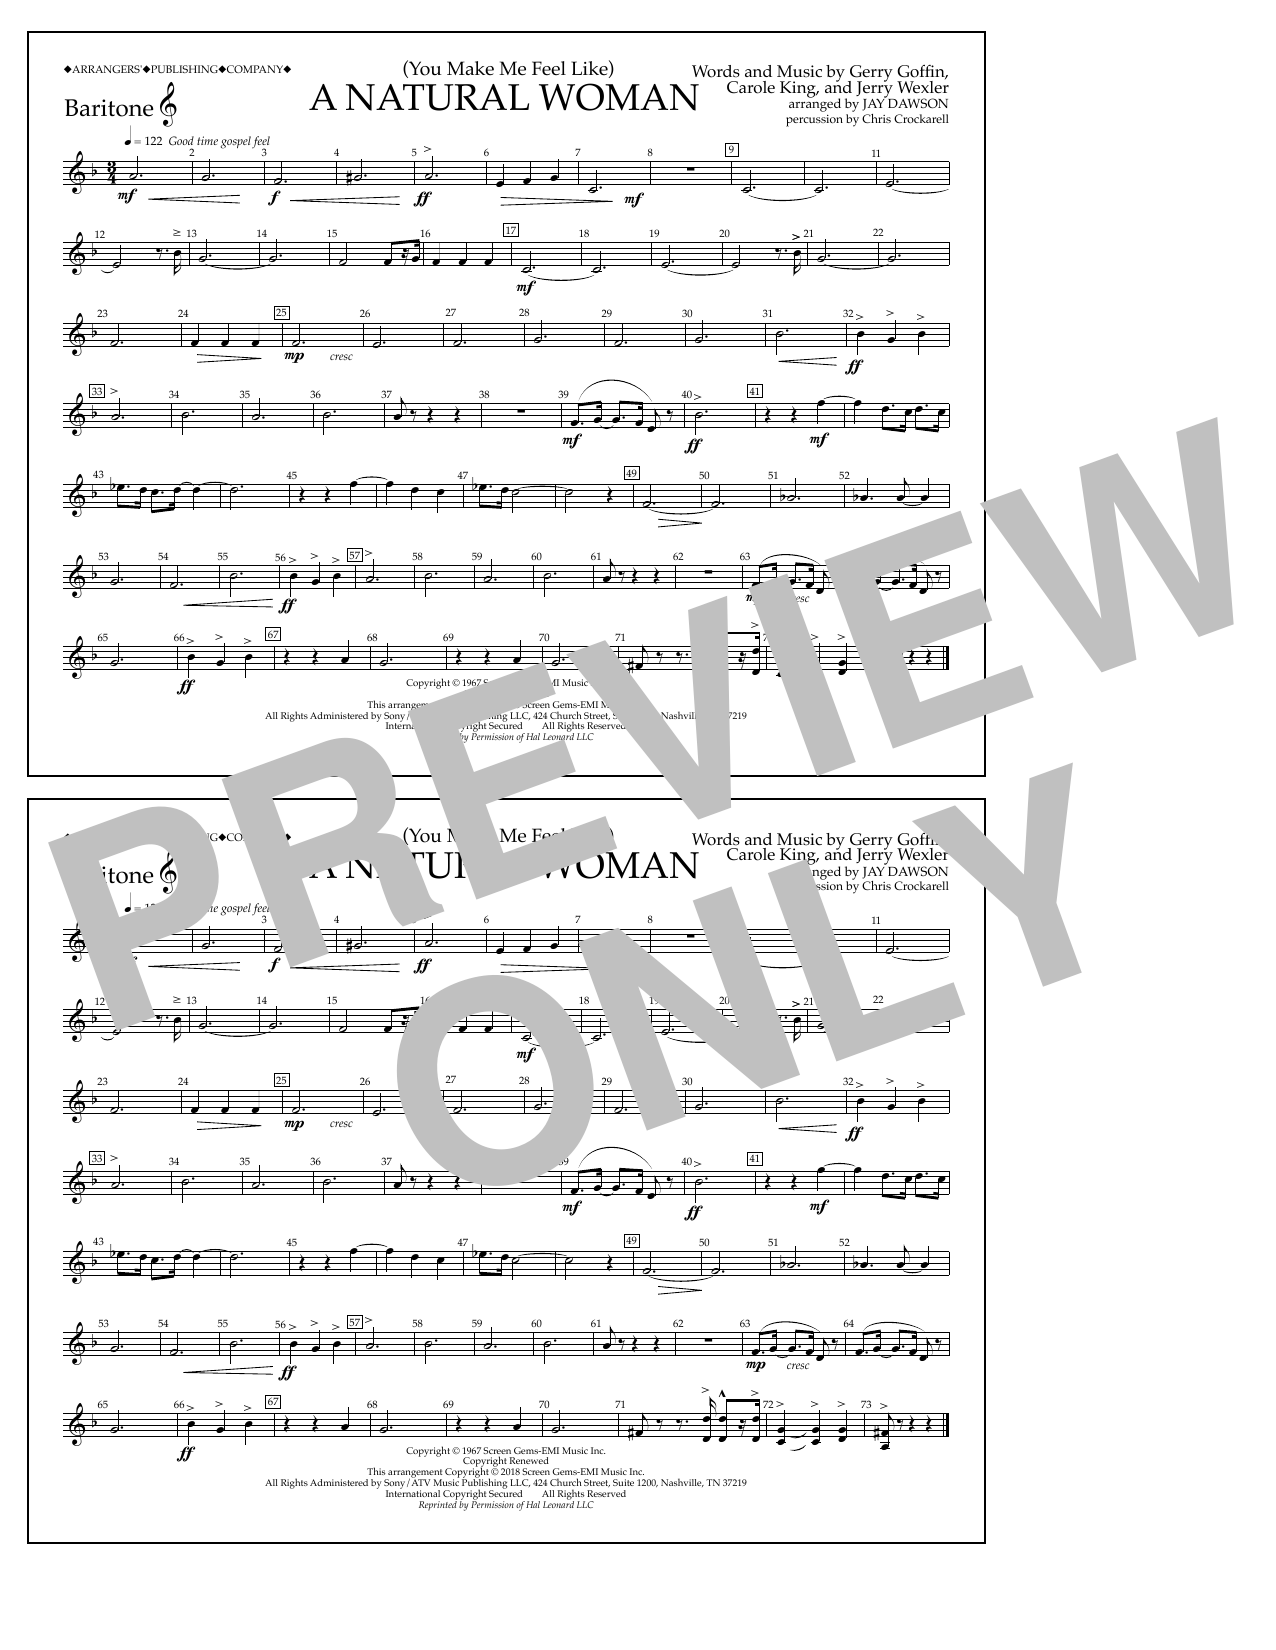 Download Aretha Franklin '(You Make Me Feel Like) A Natural Woman (arr. Jay Dawson) - Baritone T.C.' Digital Sheet Music Notes & Chords and start playing in minutes